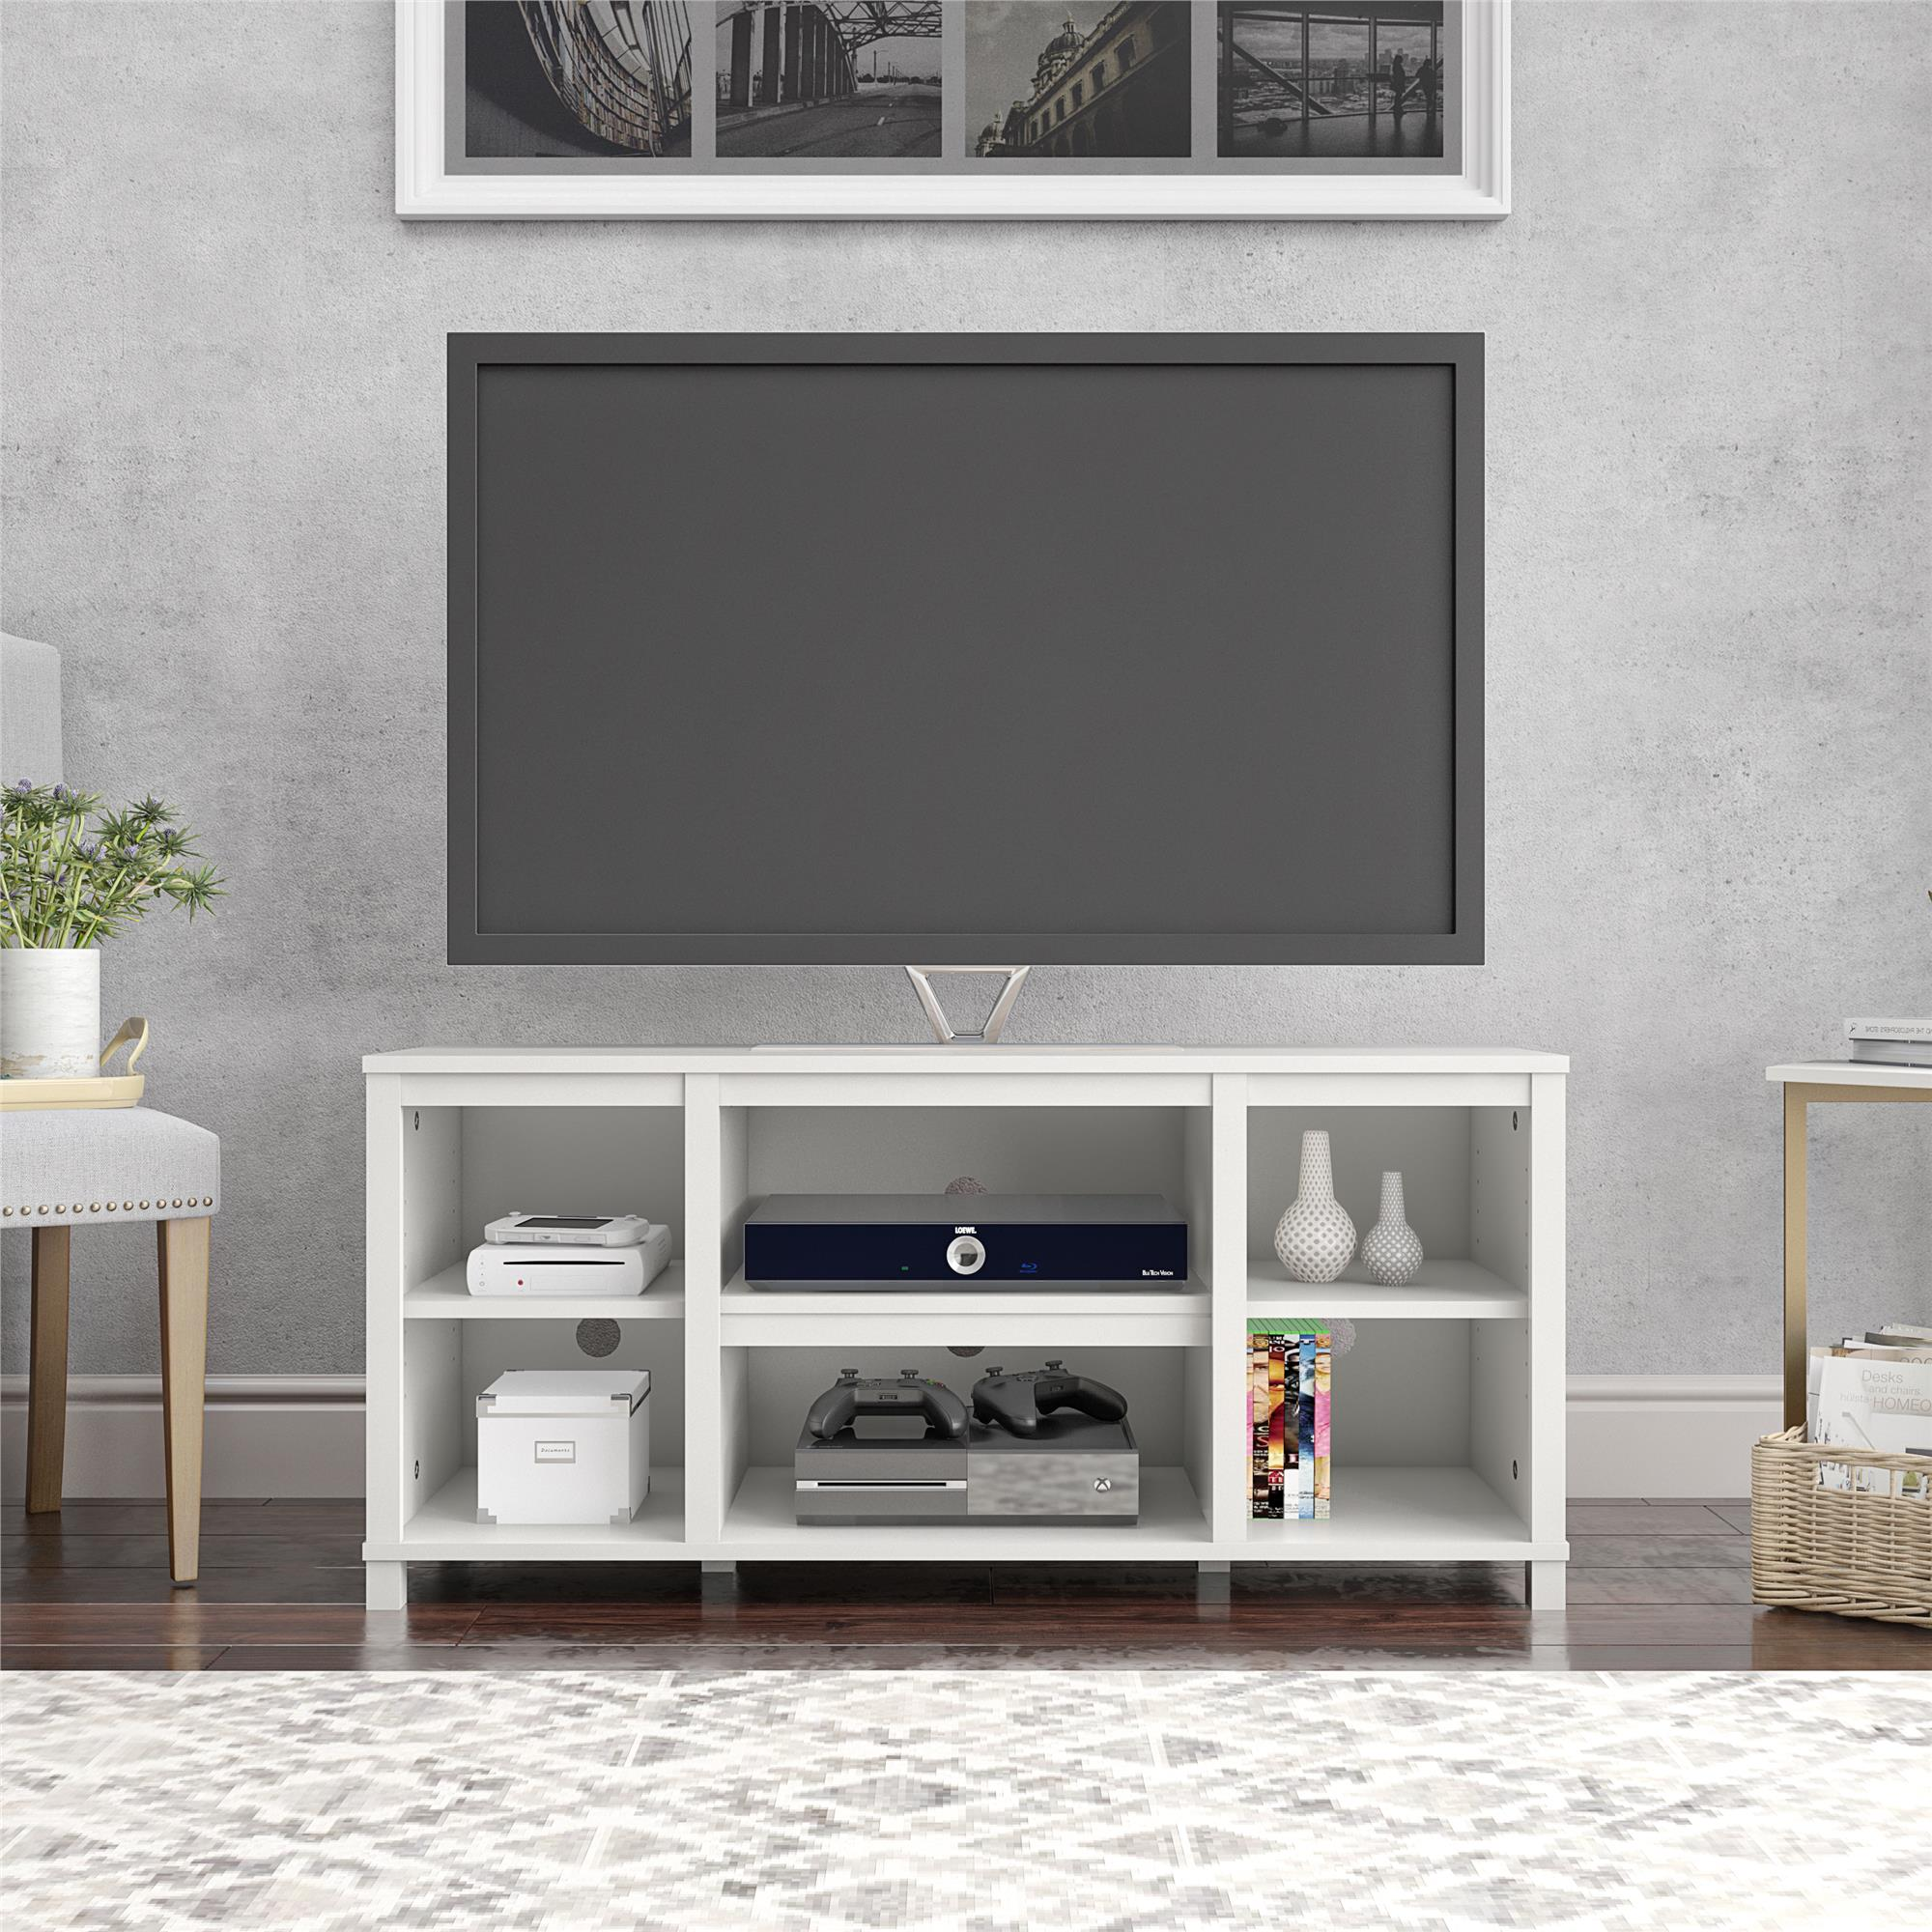 Mainstays Parsons Tv Stand For Tvs Up To 50 Espresso Walmart Com Walmart Com